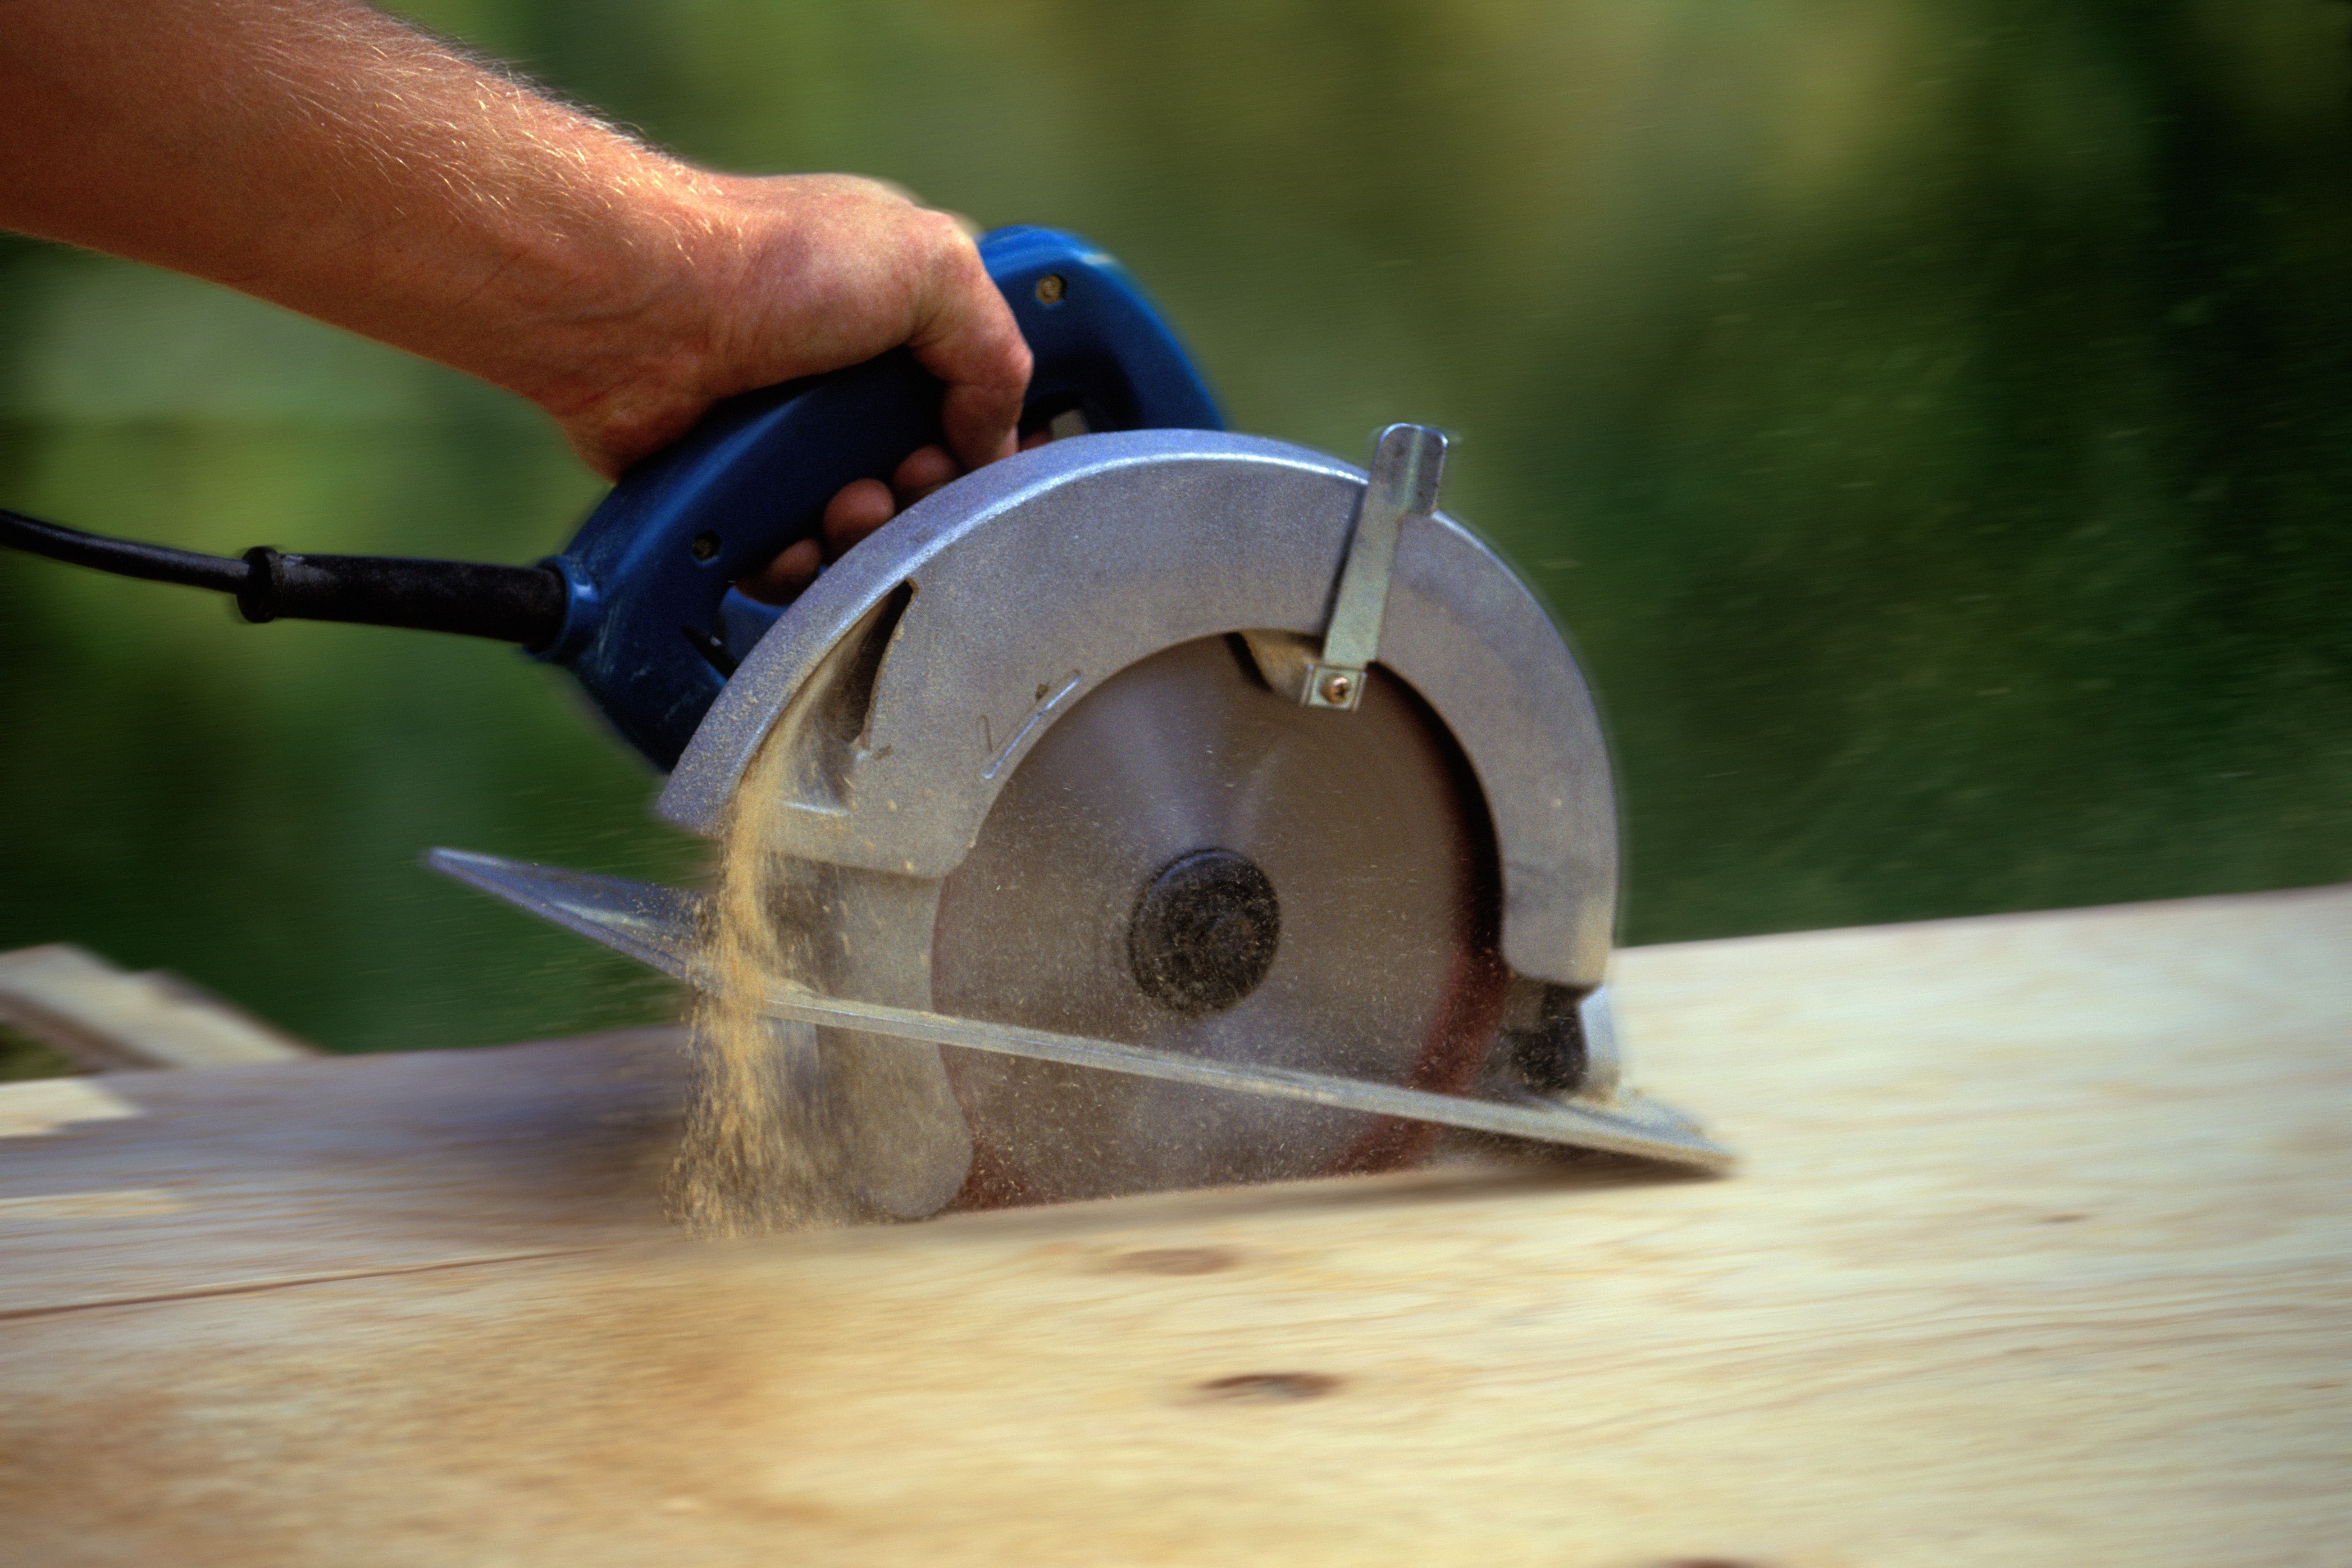 Choosing The Right Circular Saw For Your Woodworking